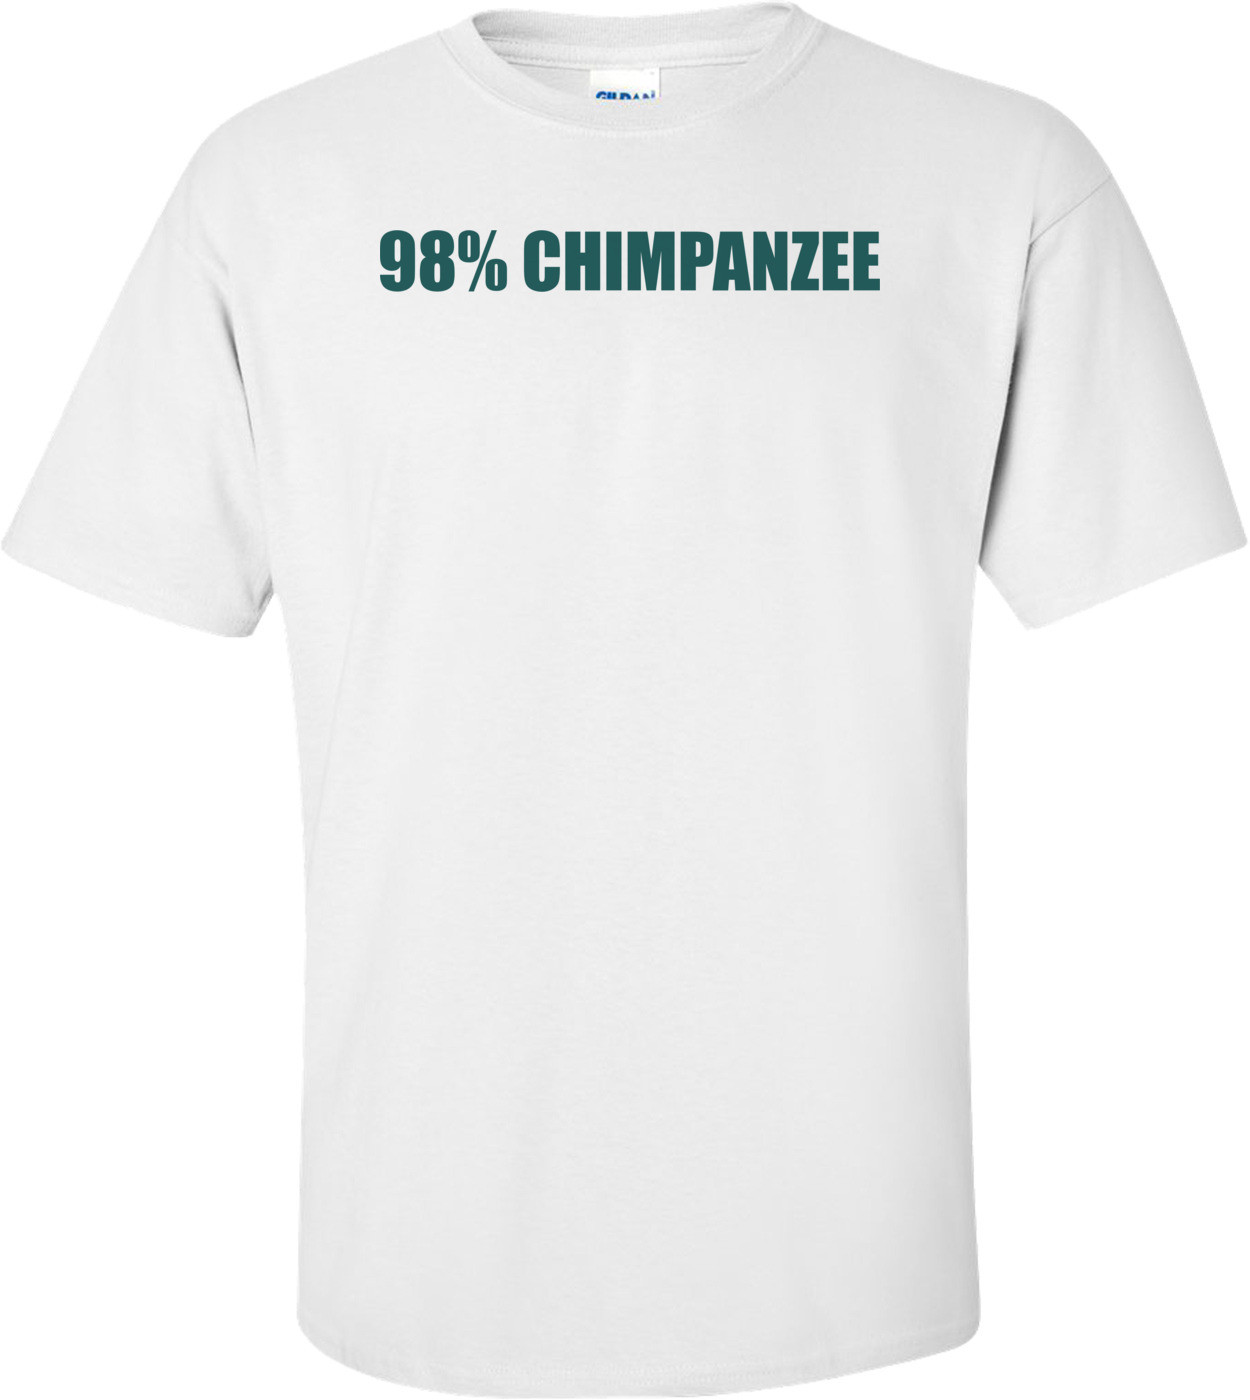 98% CHIMPANZEE Shirt